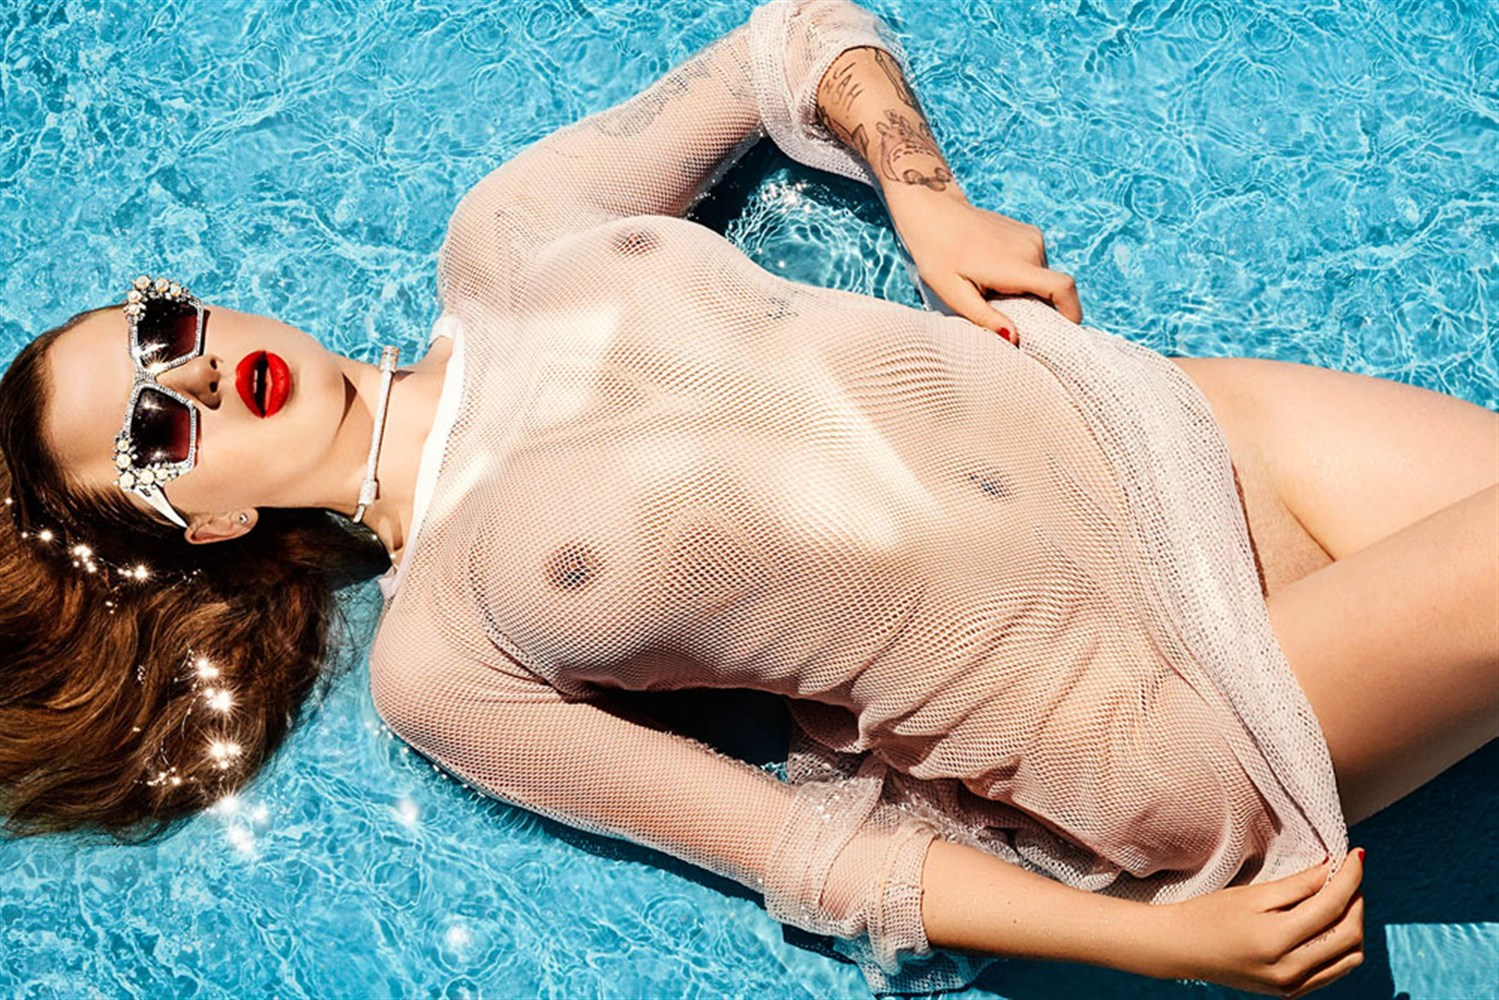 Pic post sites pool nude